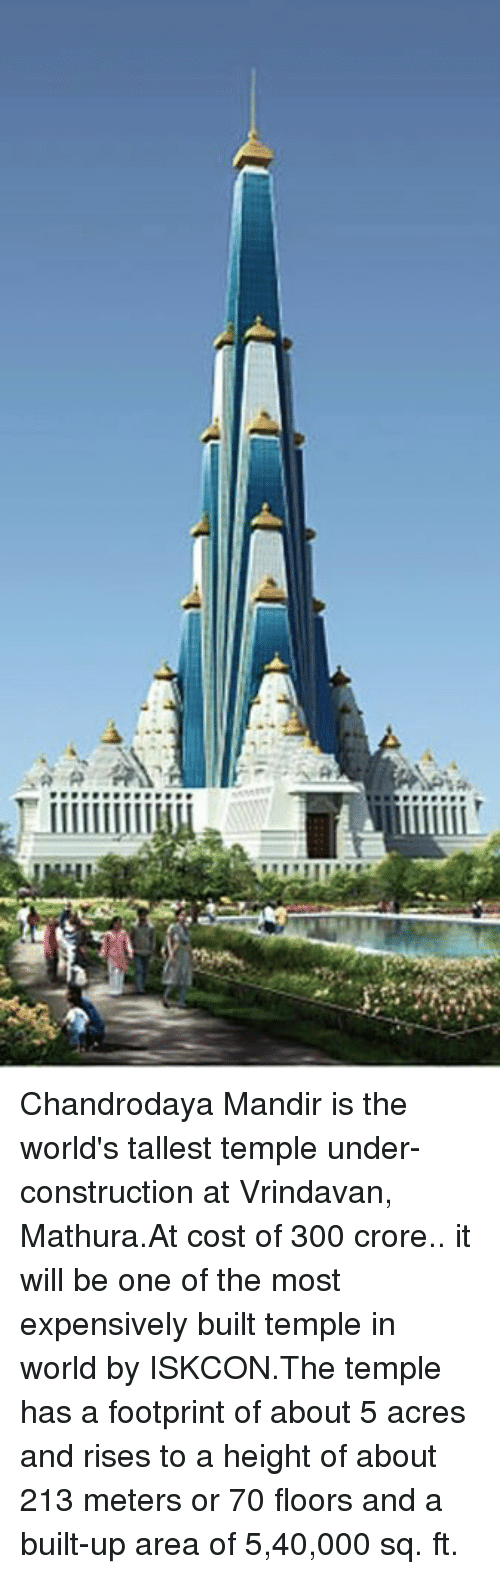 Ups, 300, and World: α  milia  eter  ees on Chandrodaya Mandir is the world's tallest temple under-construction at Vrindavan, Mathura.At cost of ₹300 crore.. it will be one of the most expensively built temple in world by ISKCON.The temple has a footprint of about 5 acres and rises to a height of about 213 meters or 70 floors and a built-up area of 5,40,000 sq. ft.